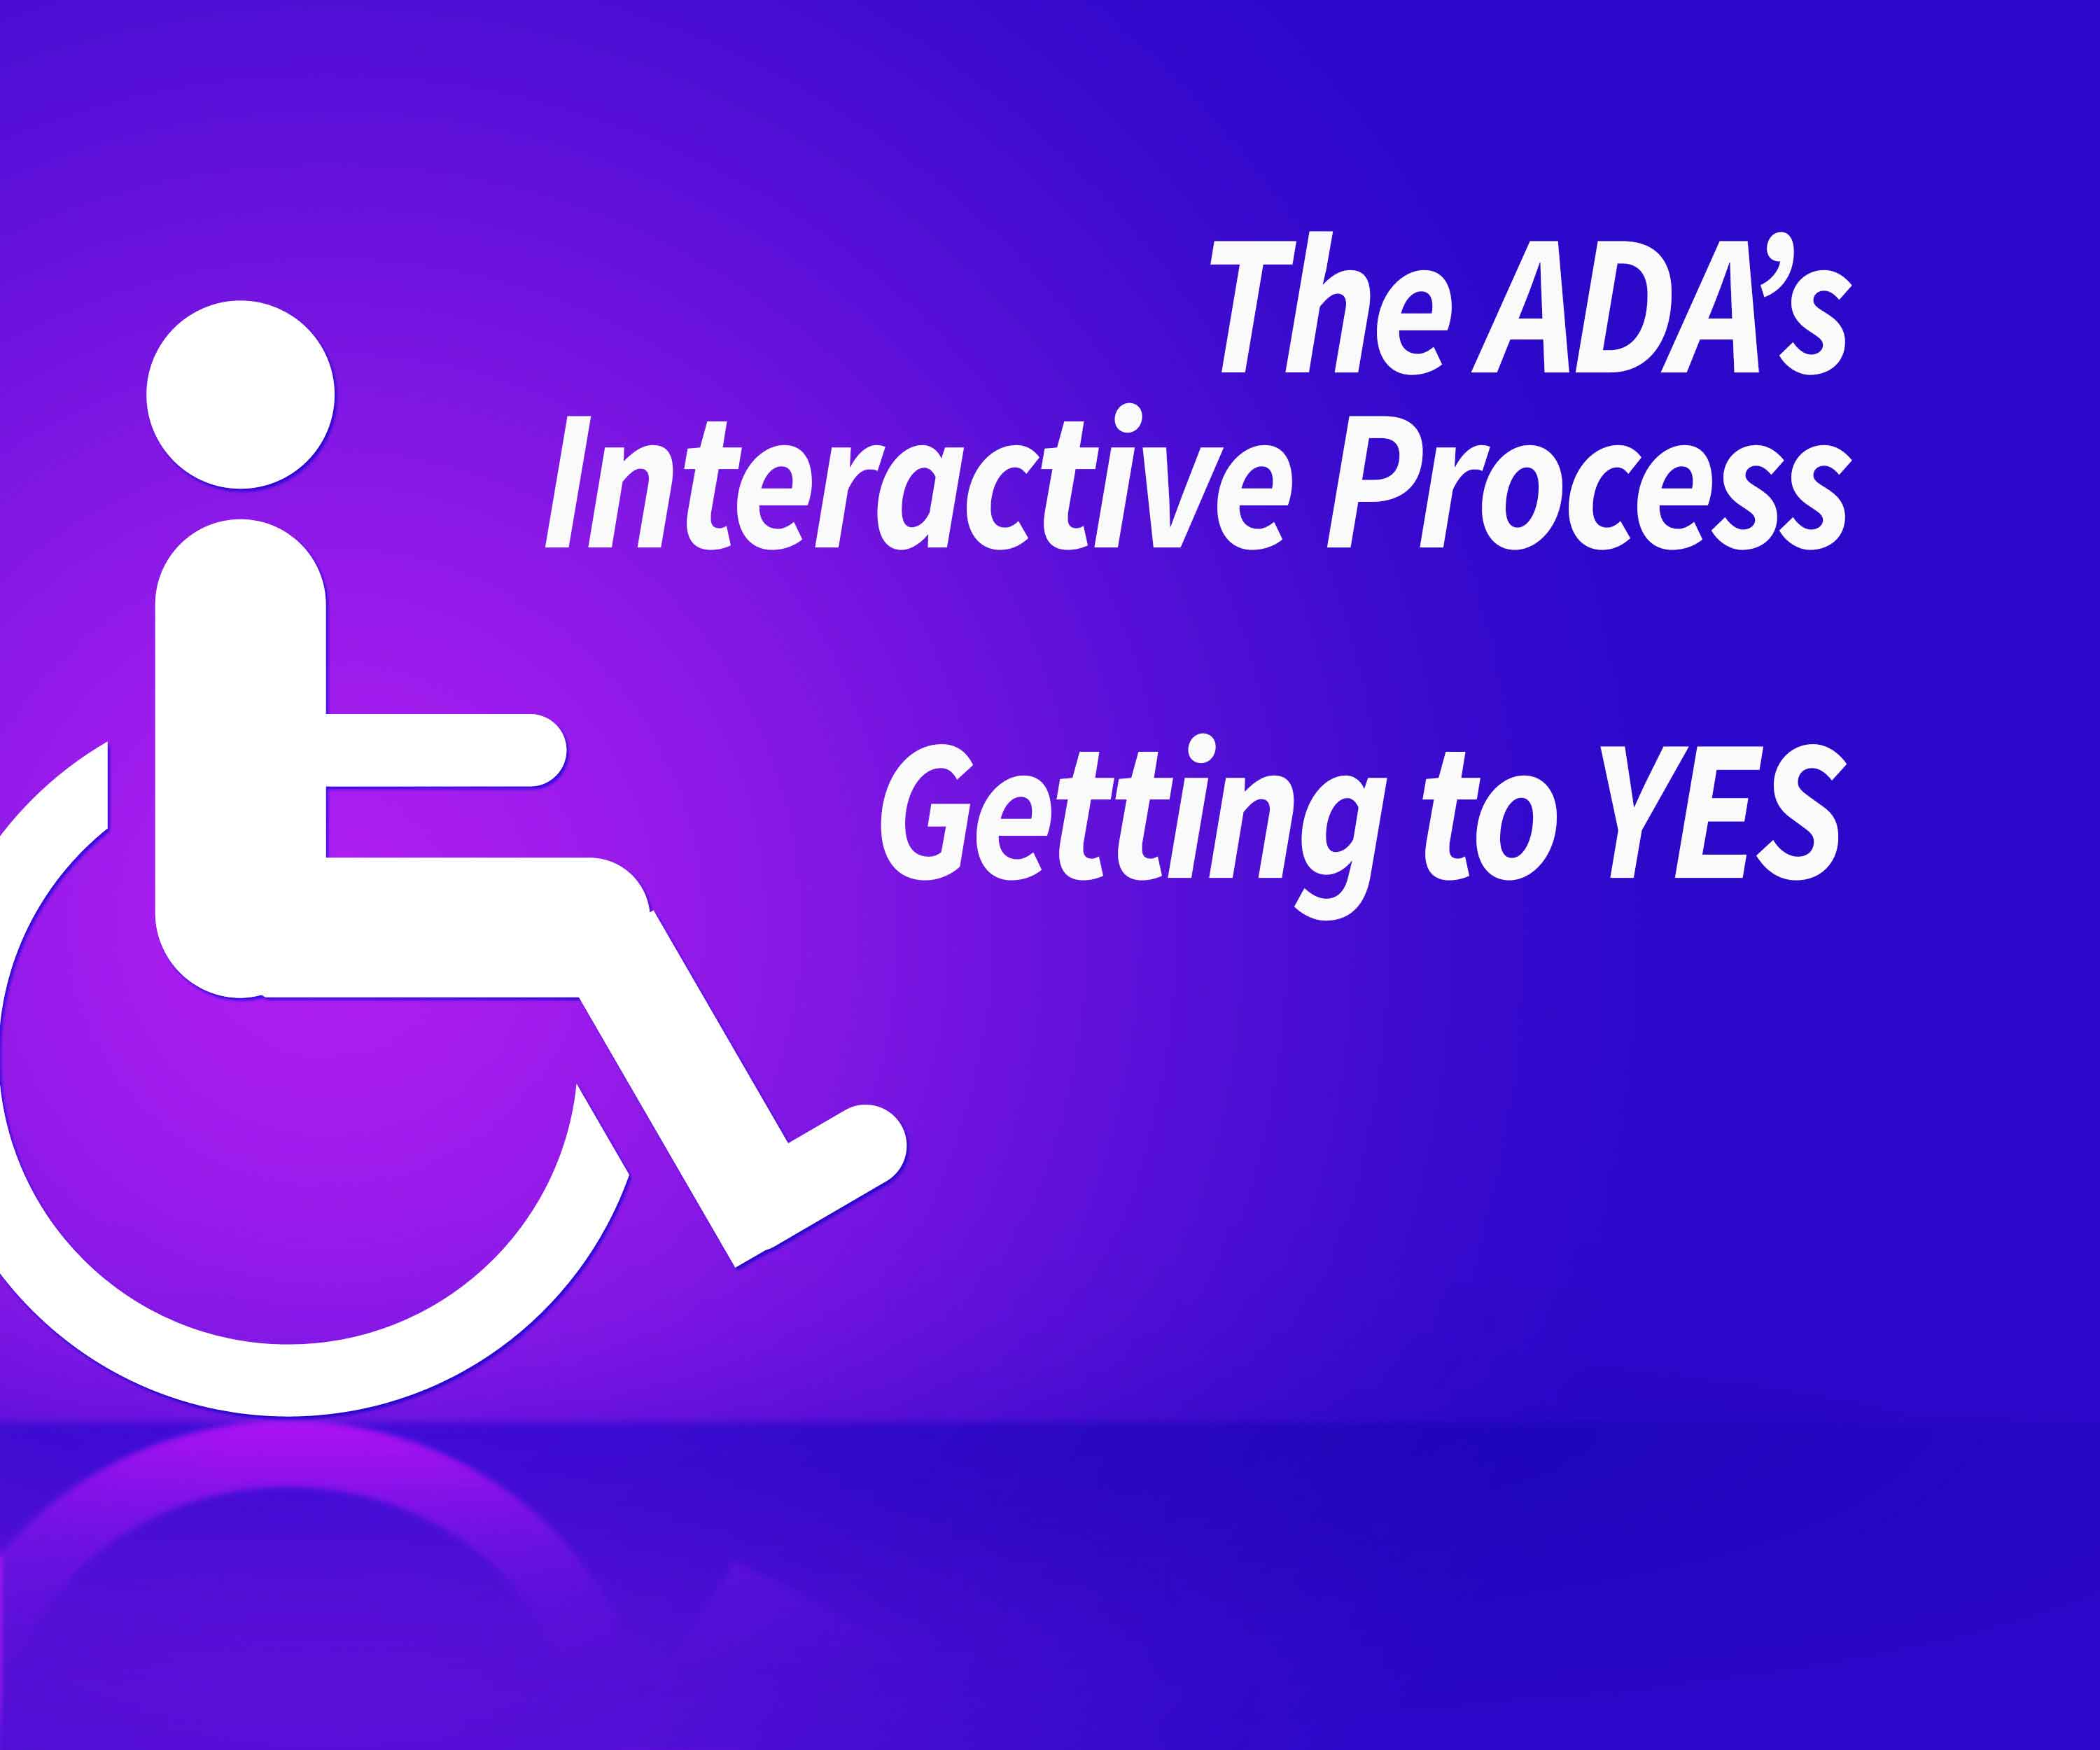 The ADA's Interactive Process, Getting to YES